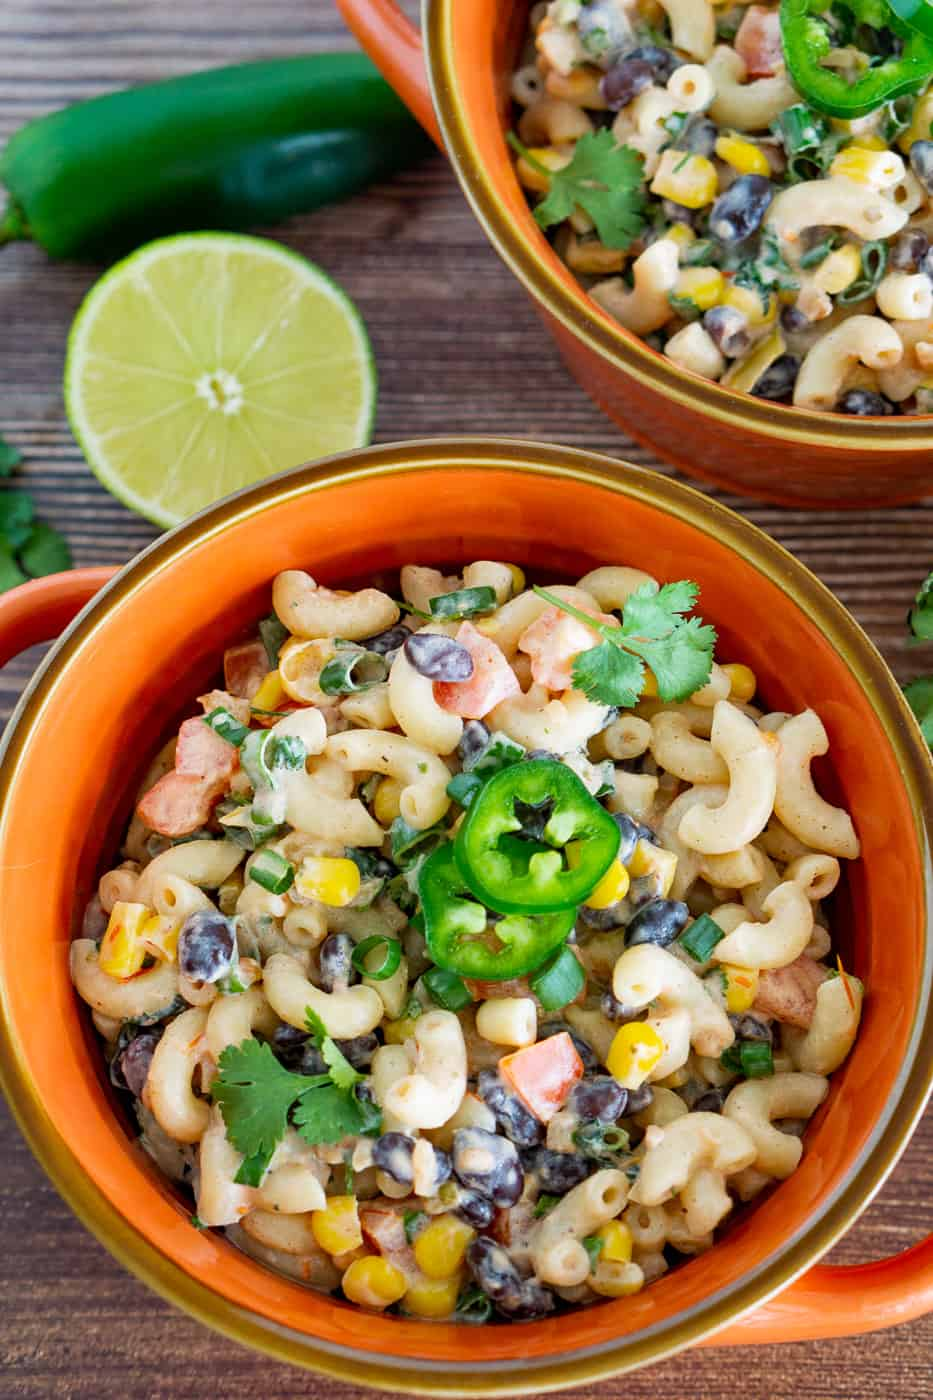 Mexican Pasta Salad with vegan creamy dressing. black beans, corn, tomatoes in a bowl topped with jalapeno garnish